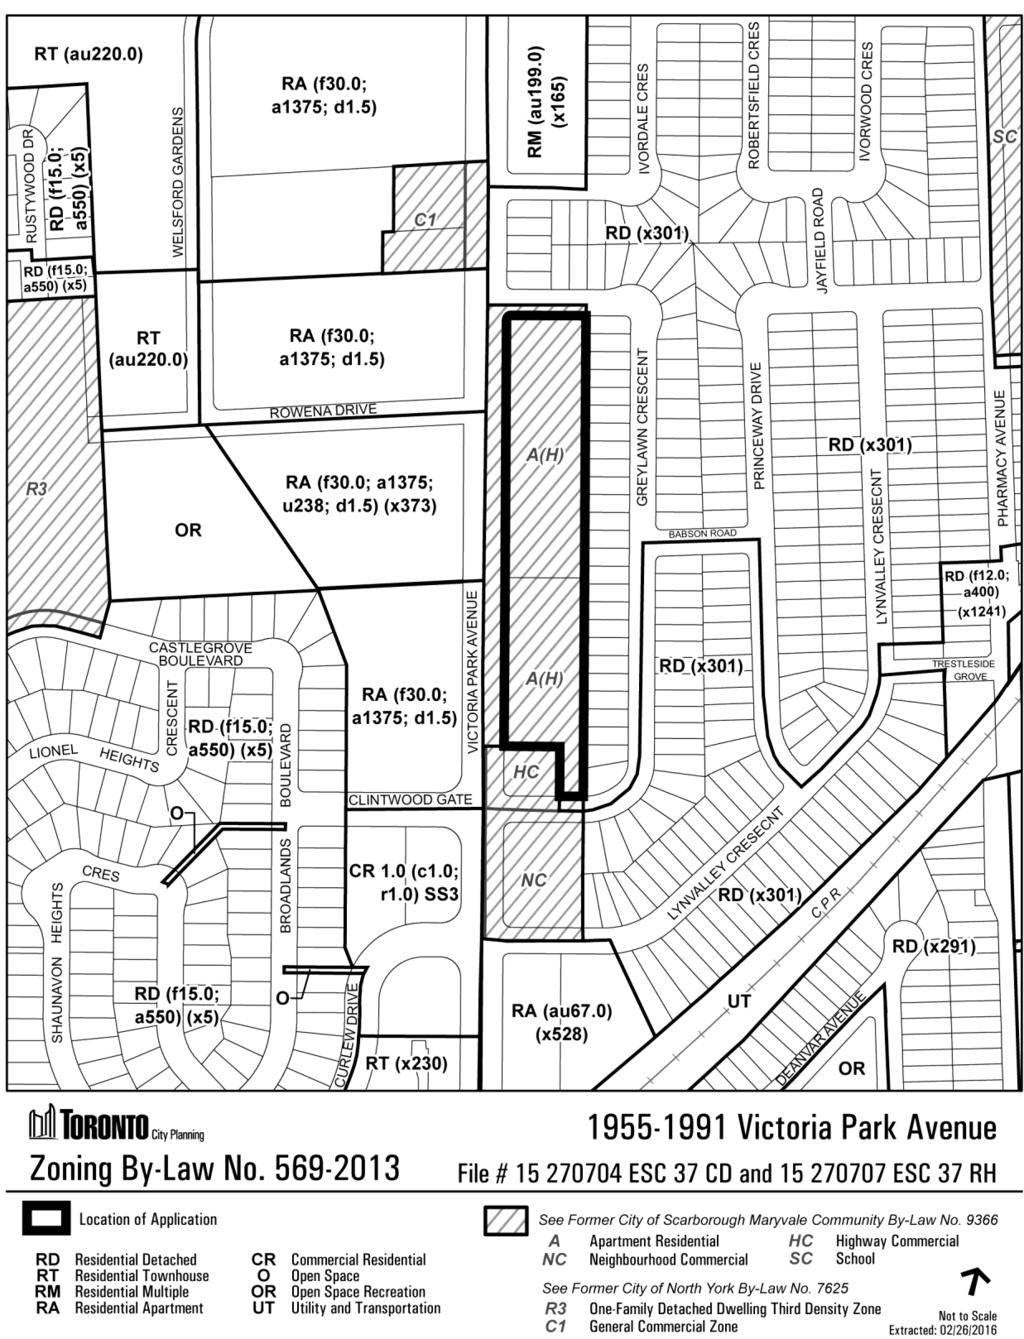 Attachment 2: Zoning Staff report for action